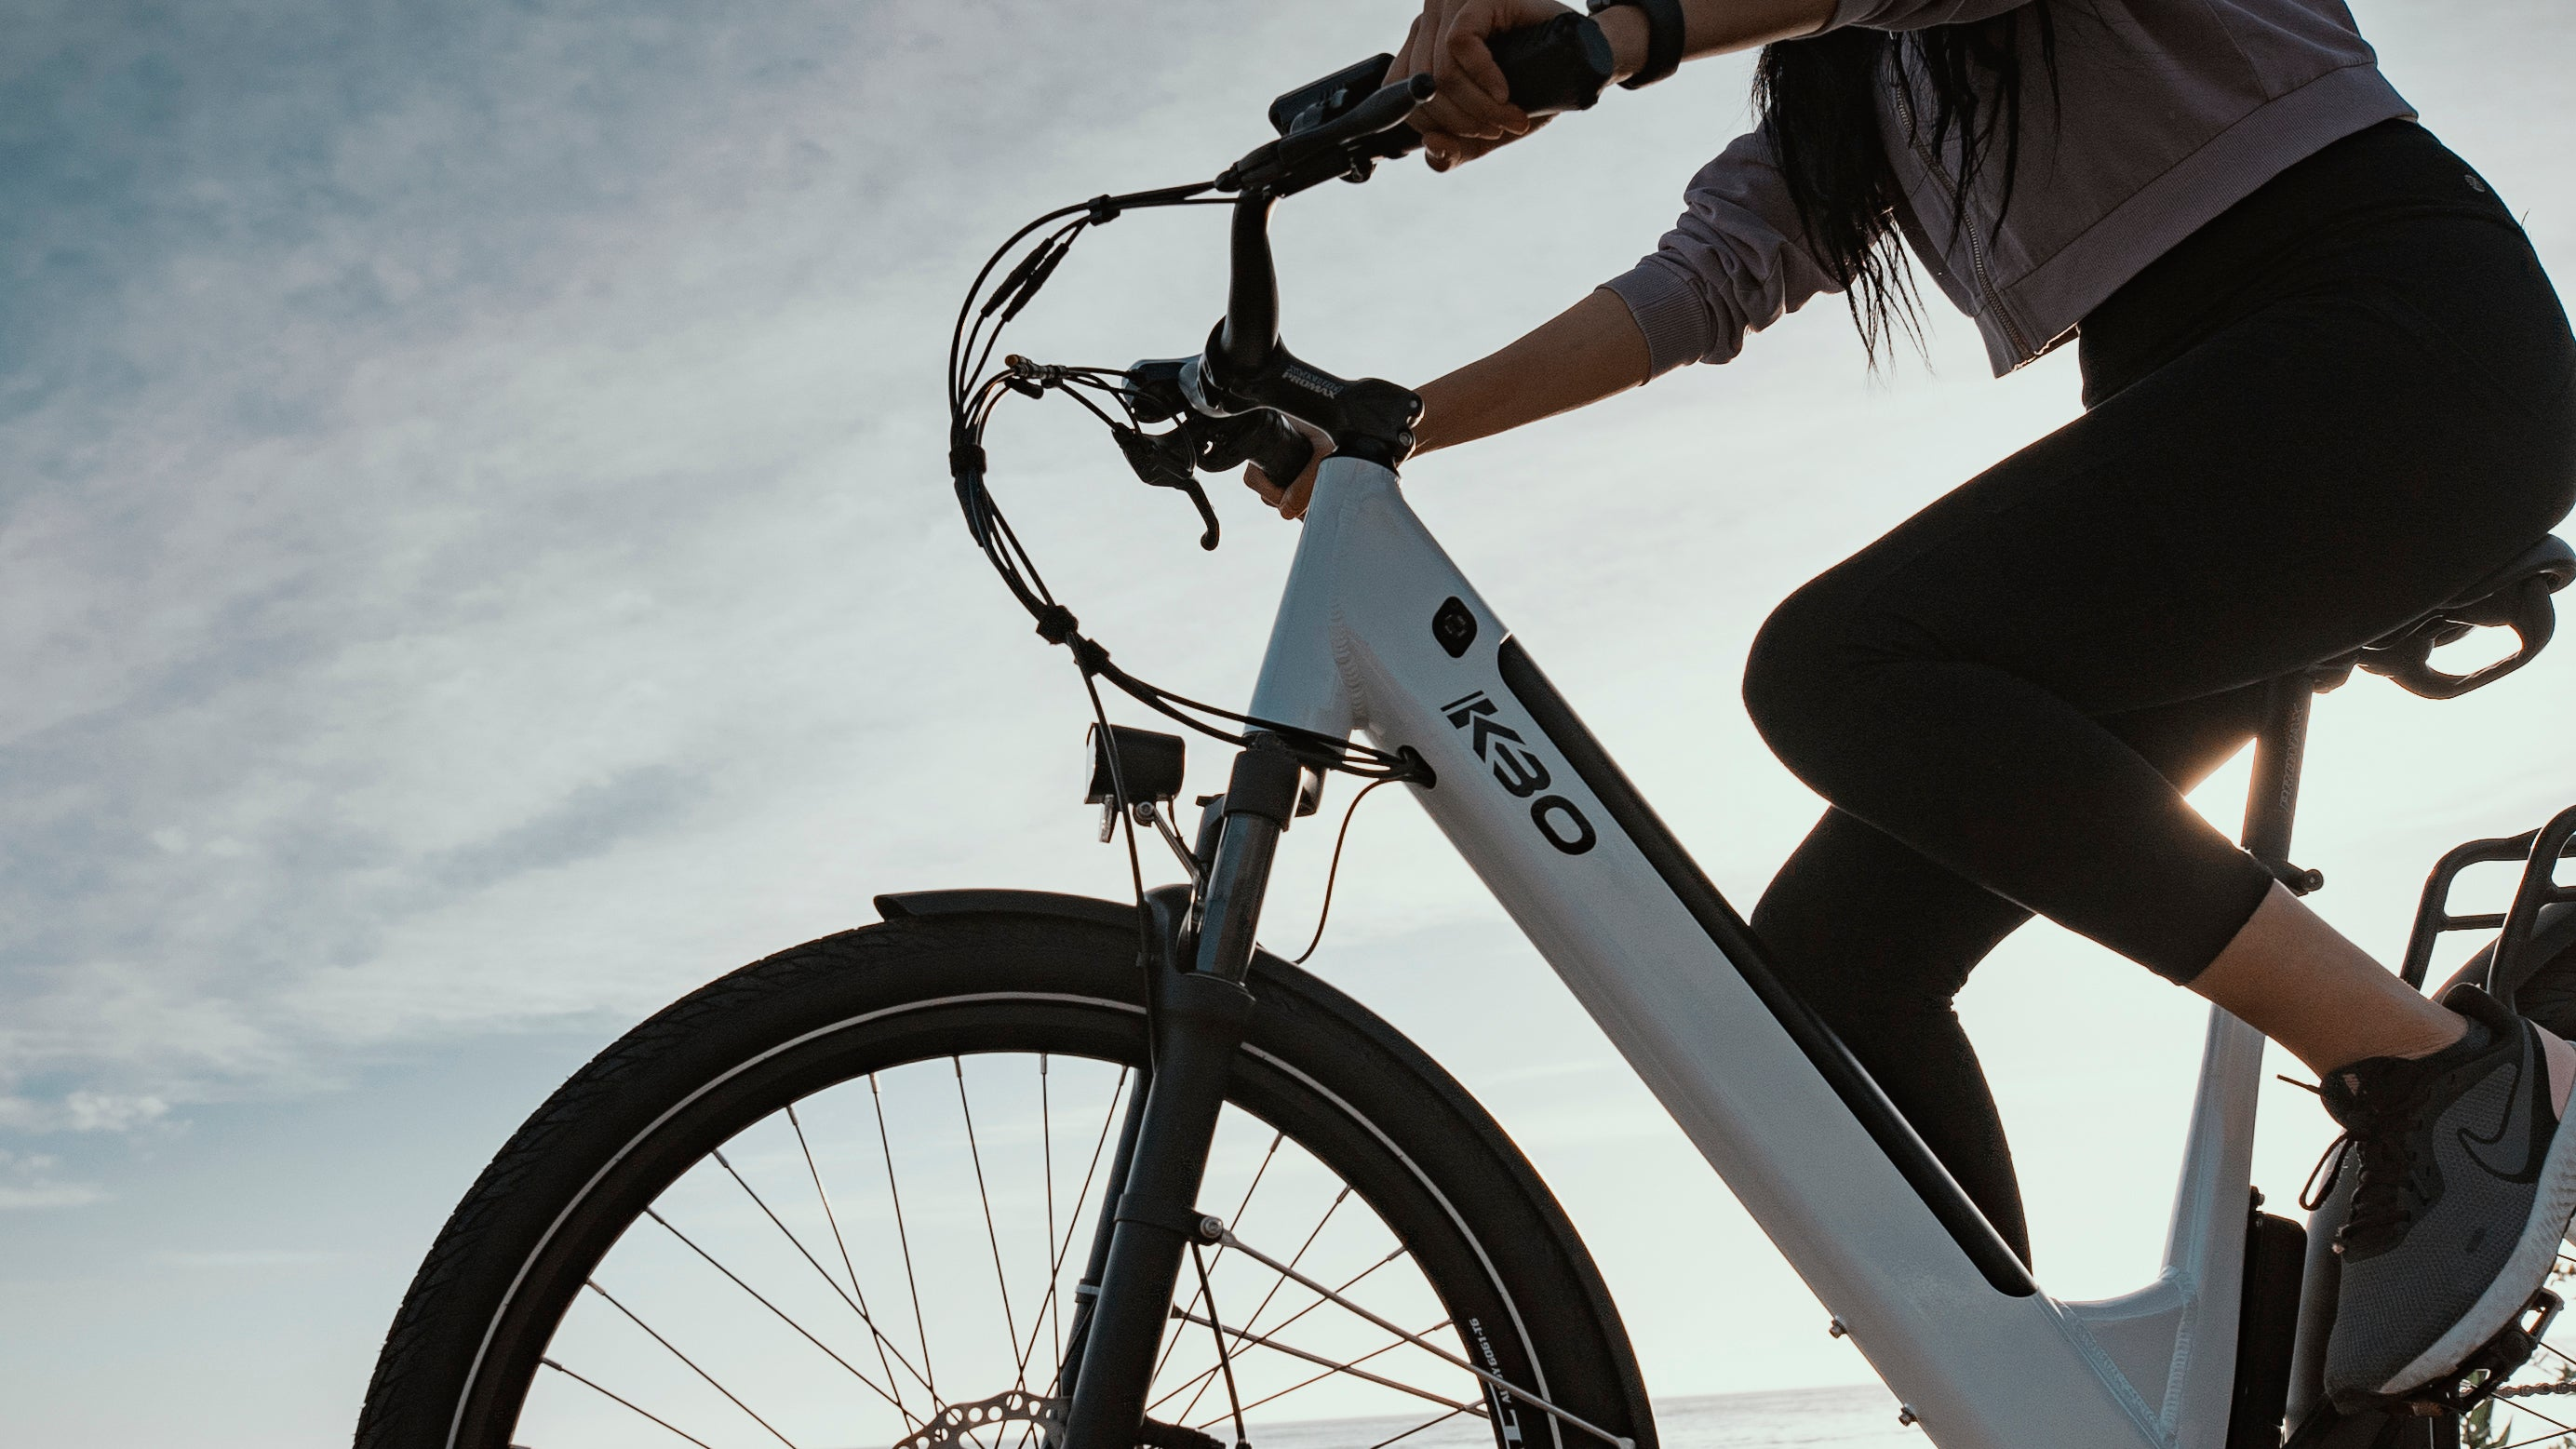 test ride a kbo bike and choose one that you like